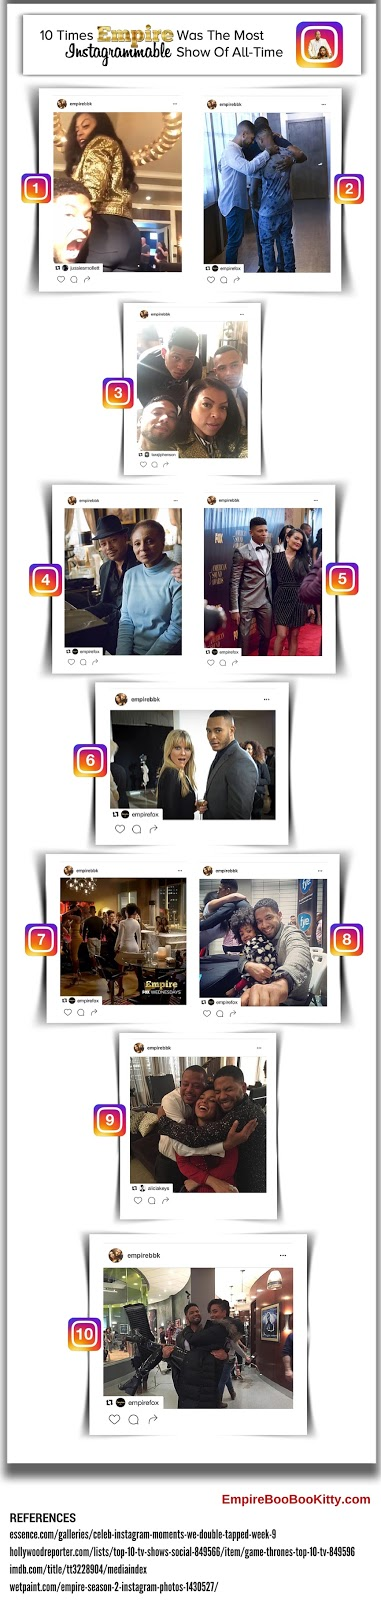 Empire Fox Instagram Infographic